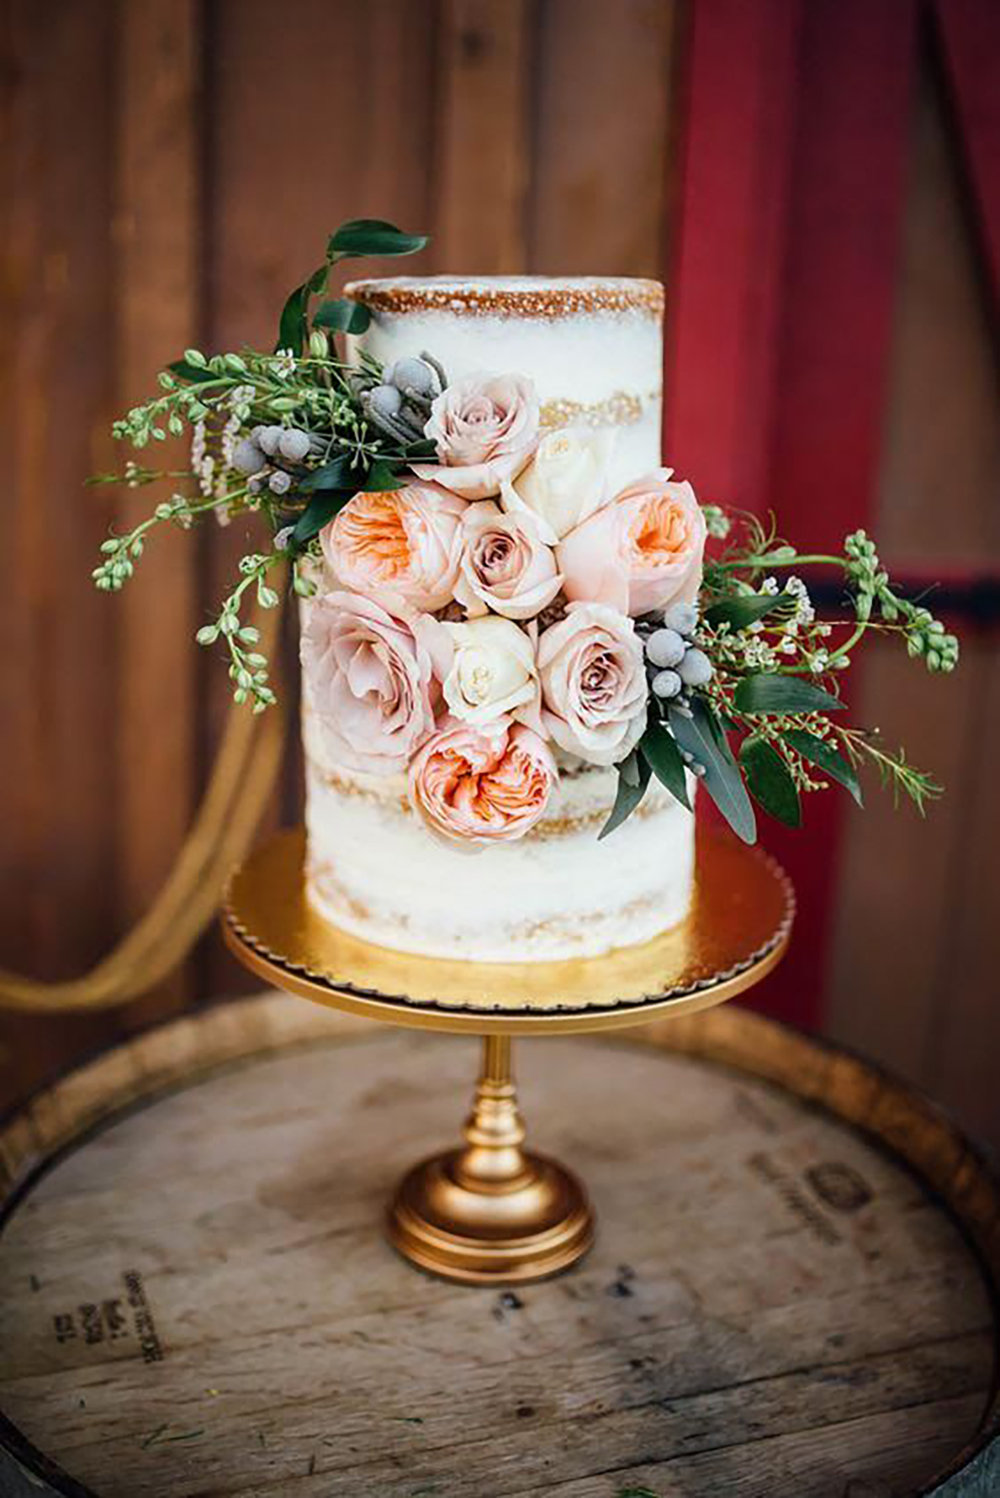 Wedding Cake and Wedding Cake Stands   Finding the Perfect Match     Cake  Ava Bakes Cakes  nbsp   nbsp